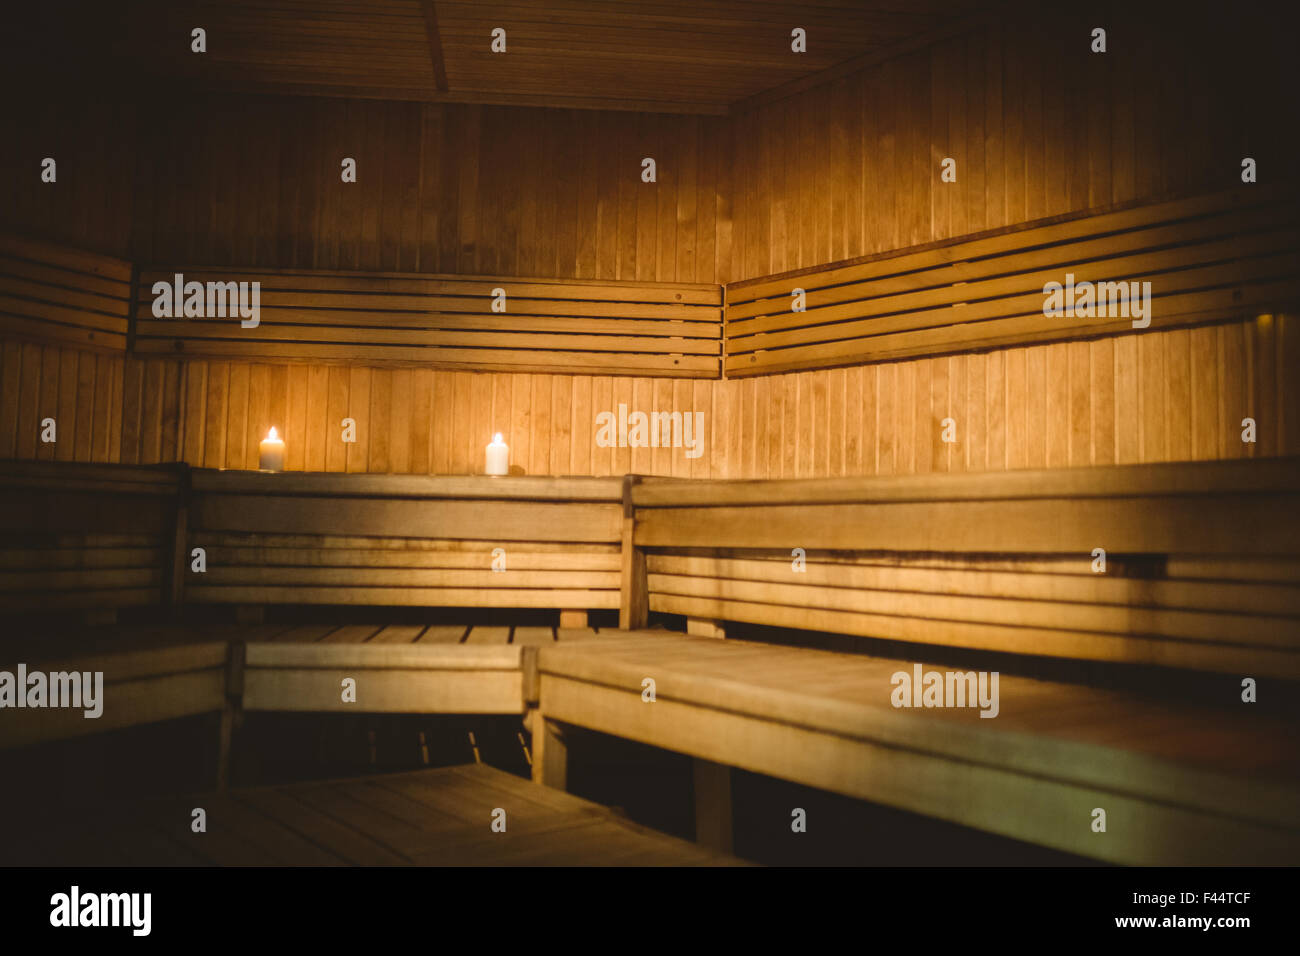 A sauna room with lit candles - Stock Image